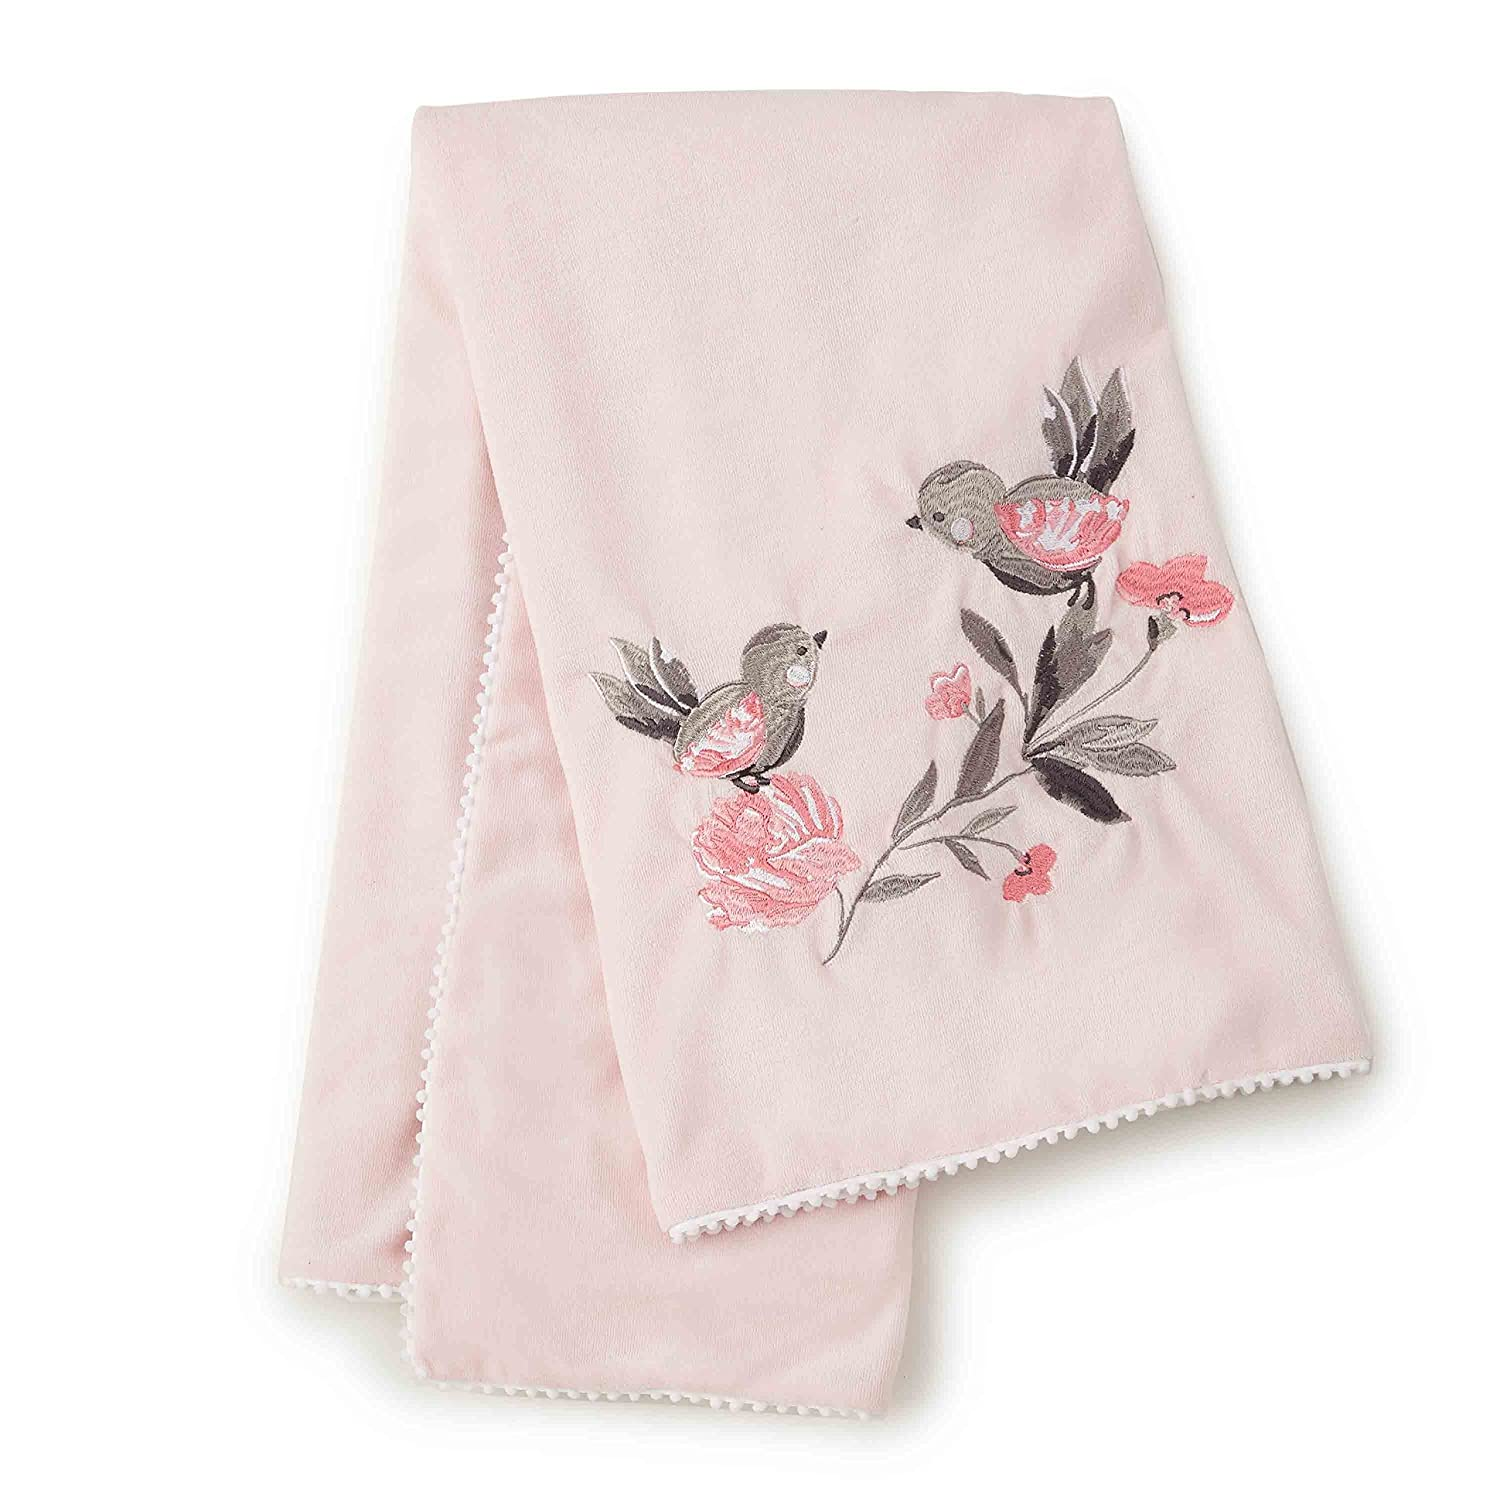 Levtex Baby Elise Grey and Pink Floral Changing Pad Cover